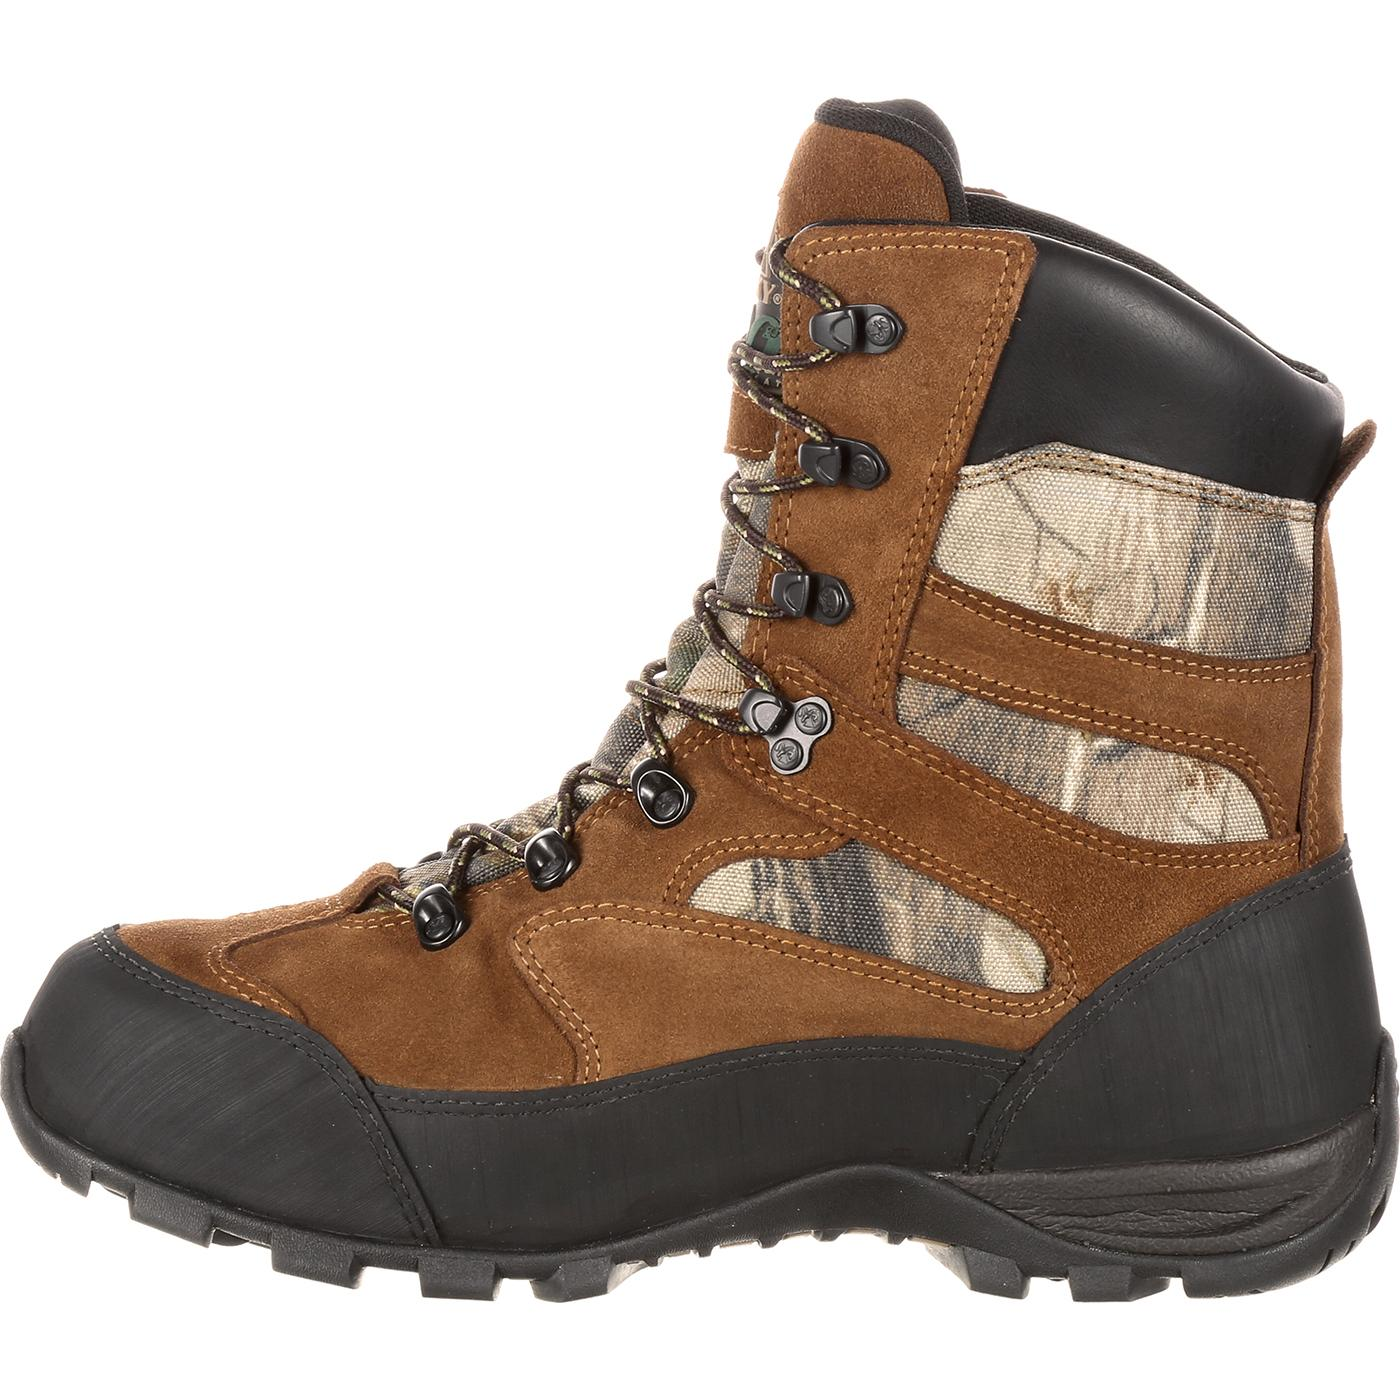 rocky boots tex waterproof insulated outdoor boot